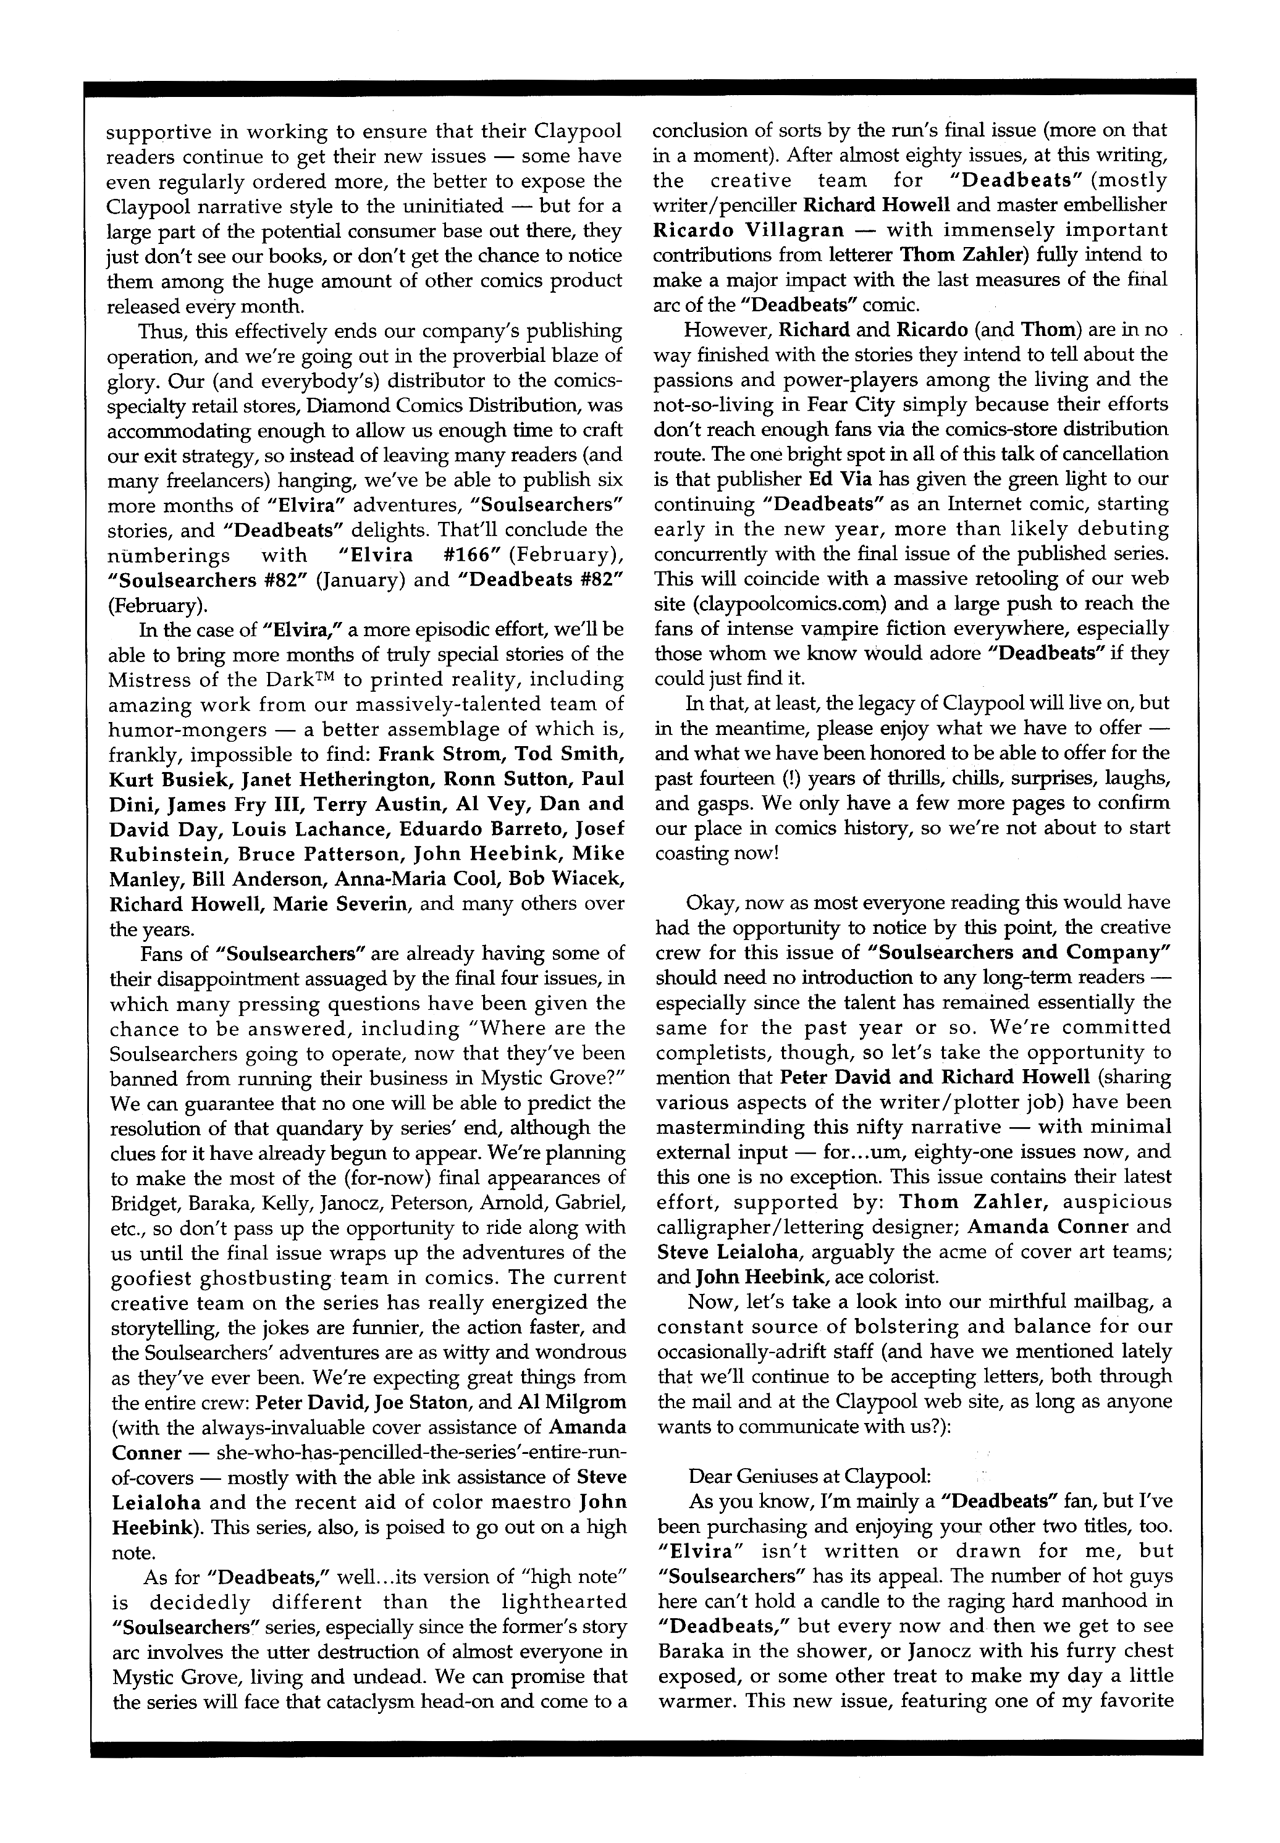 Soulsearchers and Company issue 82 - Page 30